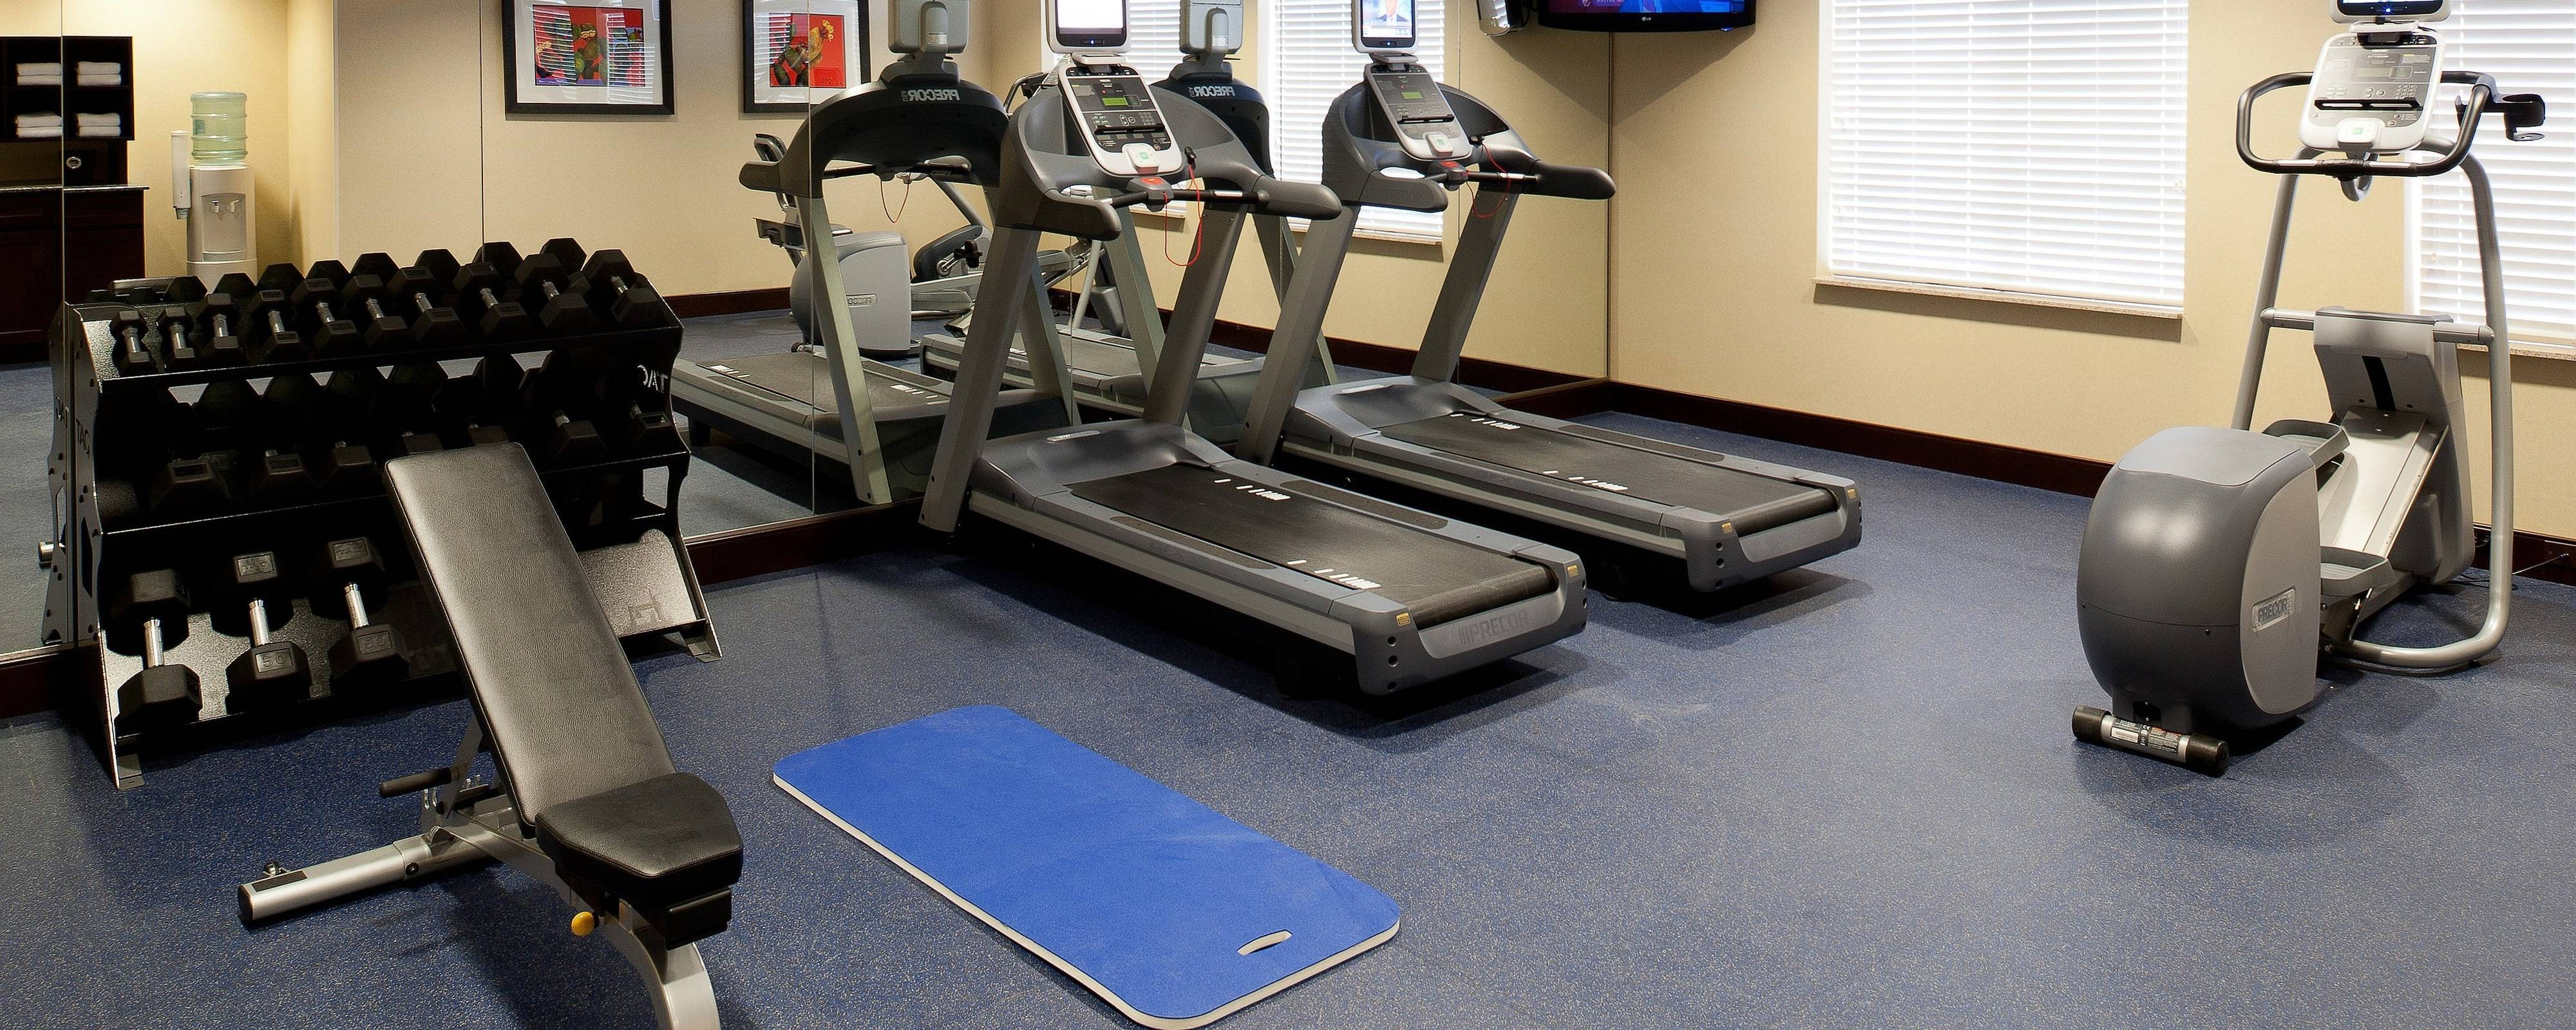 Fitnesscenter – Hotels in Tucson, AZ